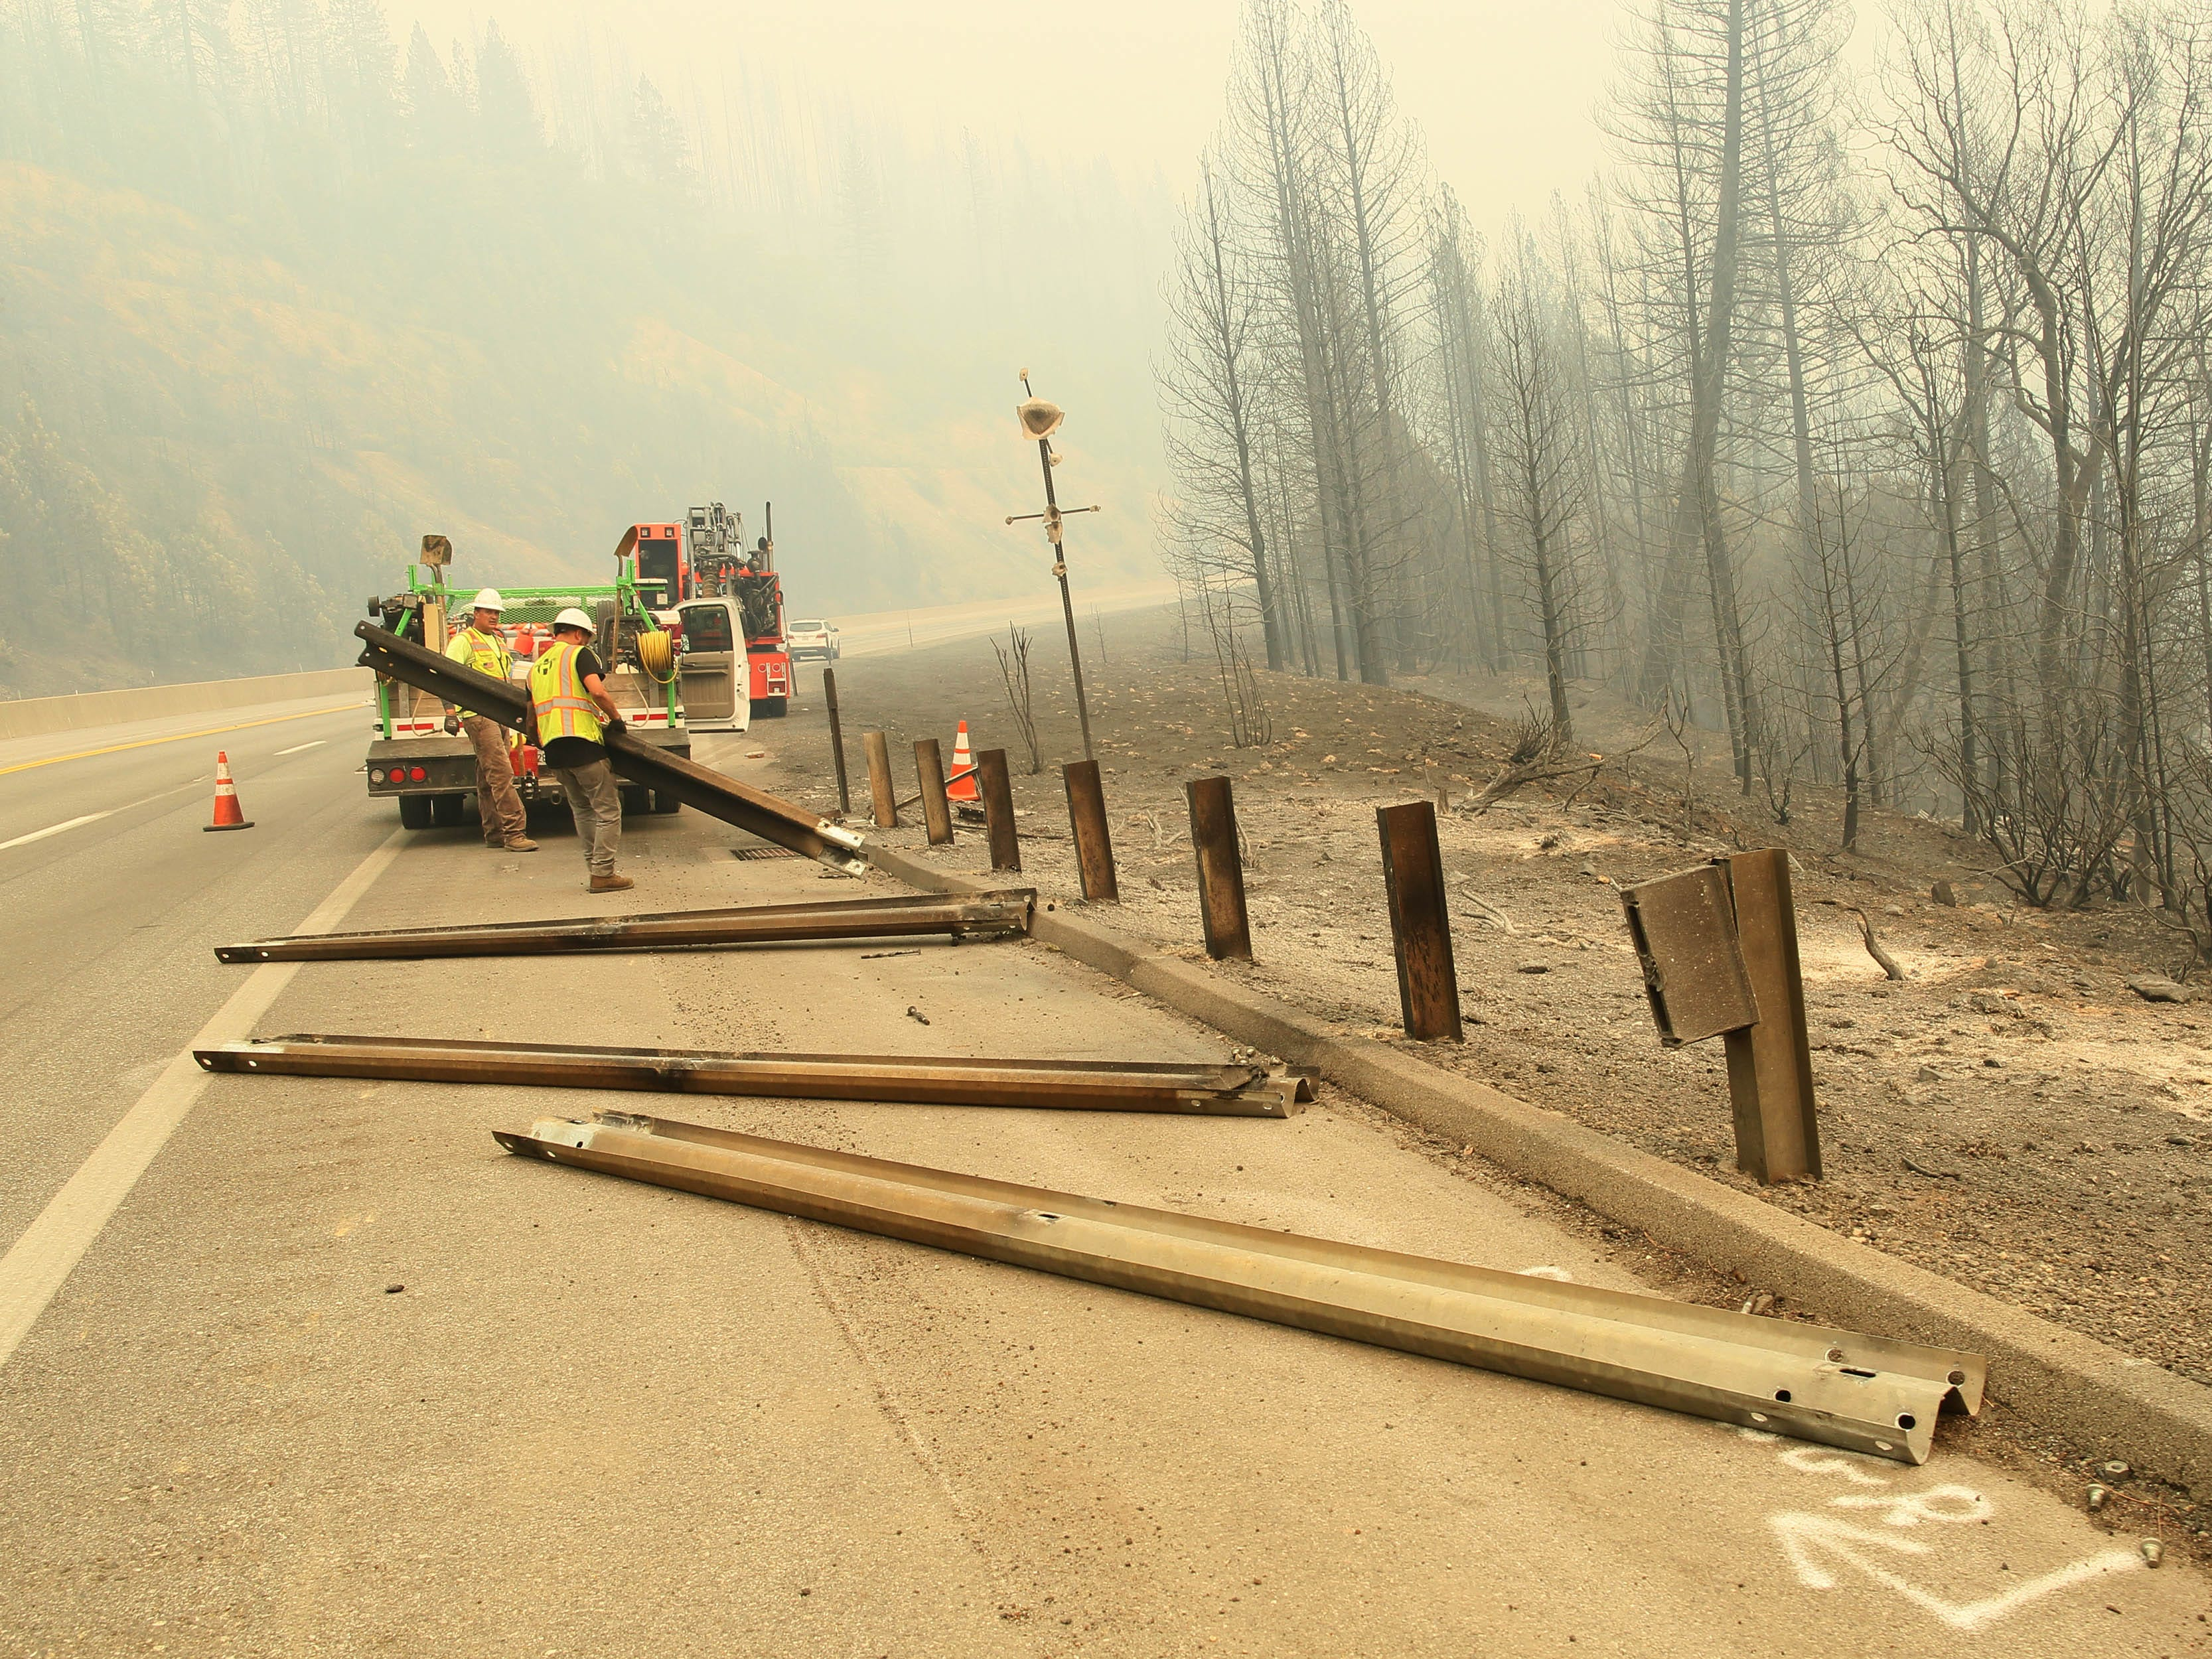 Highway Specialty Co. workers on Saturday afternoon, Sept. 8, 2018 repair a section of the rail where the Delta Fire burned out wooden posts on the guardrails along I-5 south of Lamoine. (Hung T. Vu/ Special to the Record Searchlight)